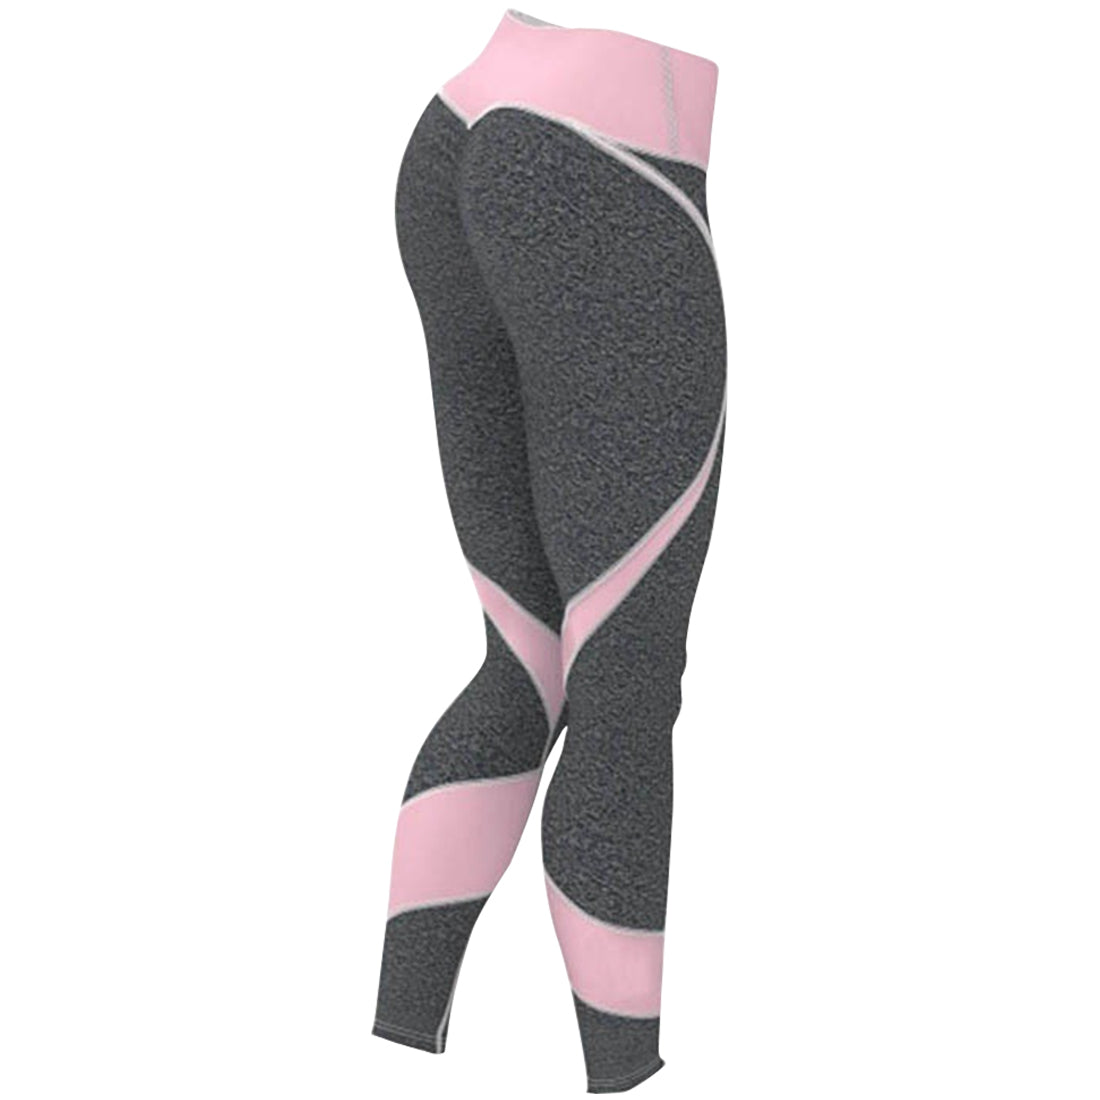 f63659034d715 Pink And Grey Yoga Pants Fitness Gym Leggings - Aveal